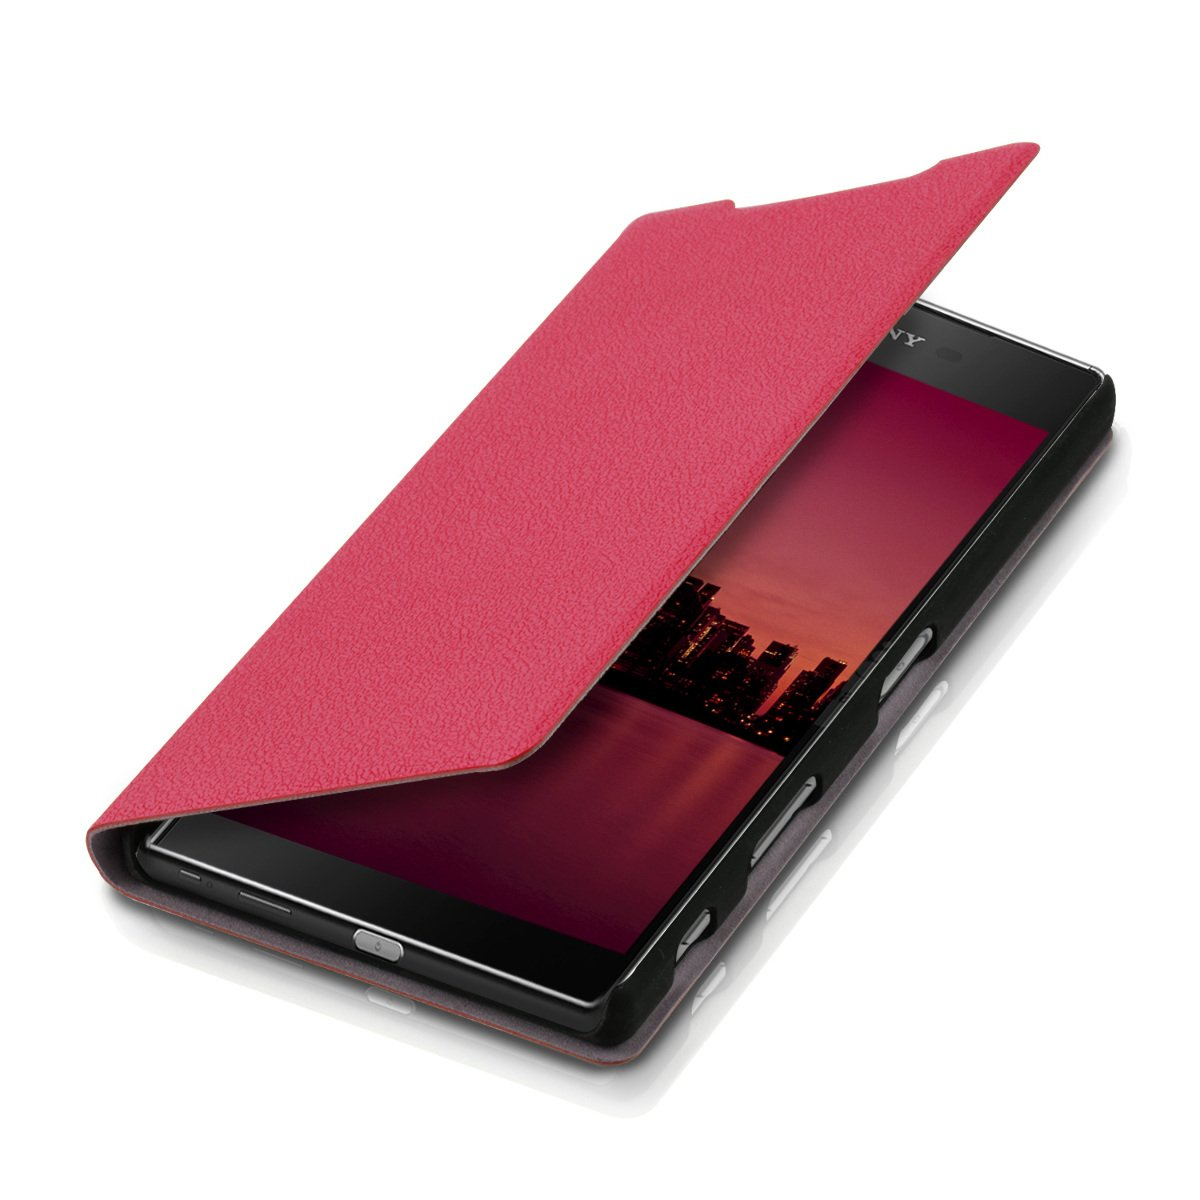 brand new b3533 69e41 kwmobile Flip Case for Sony Xperia Z5 Premium - Book Style Protective Front  Flip Cover Smartphone Case - Dark Pink